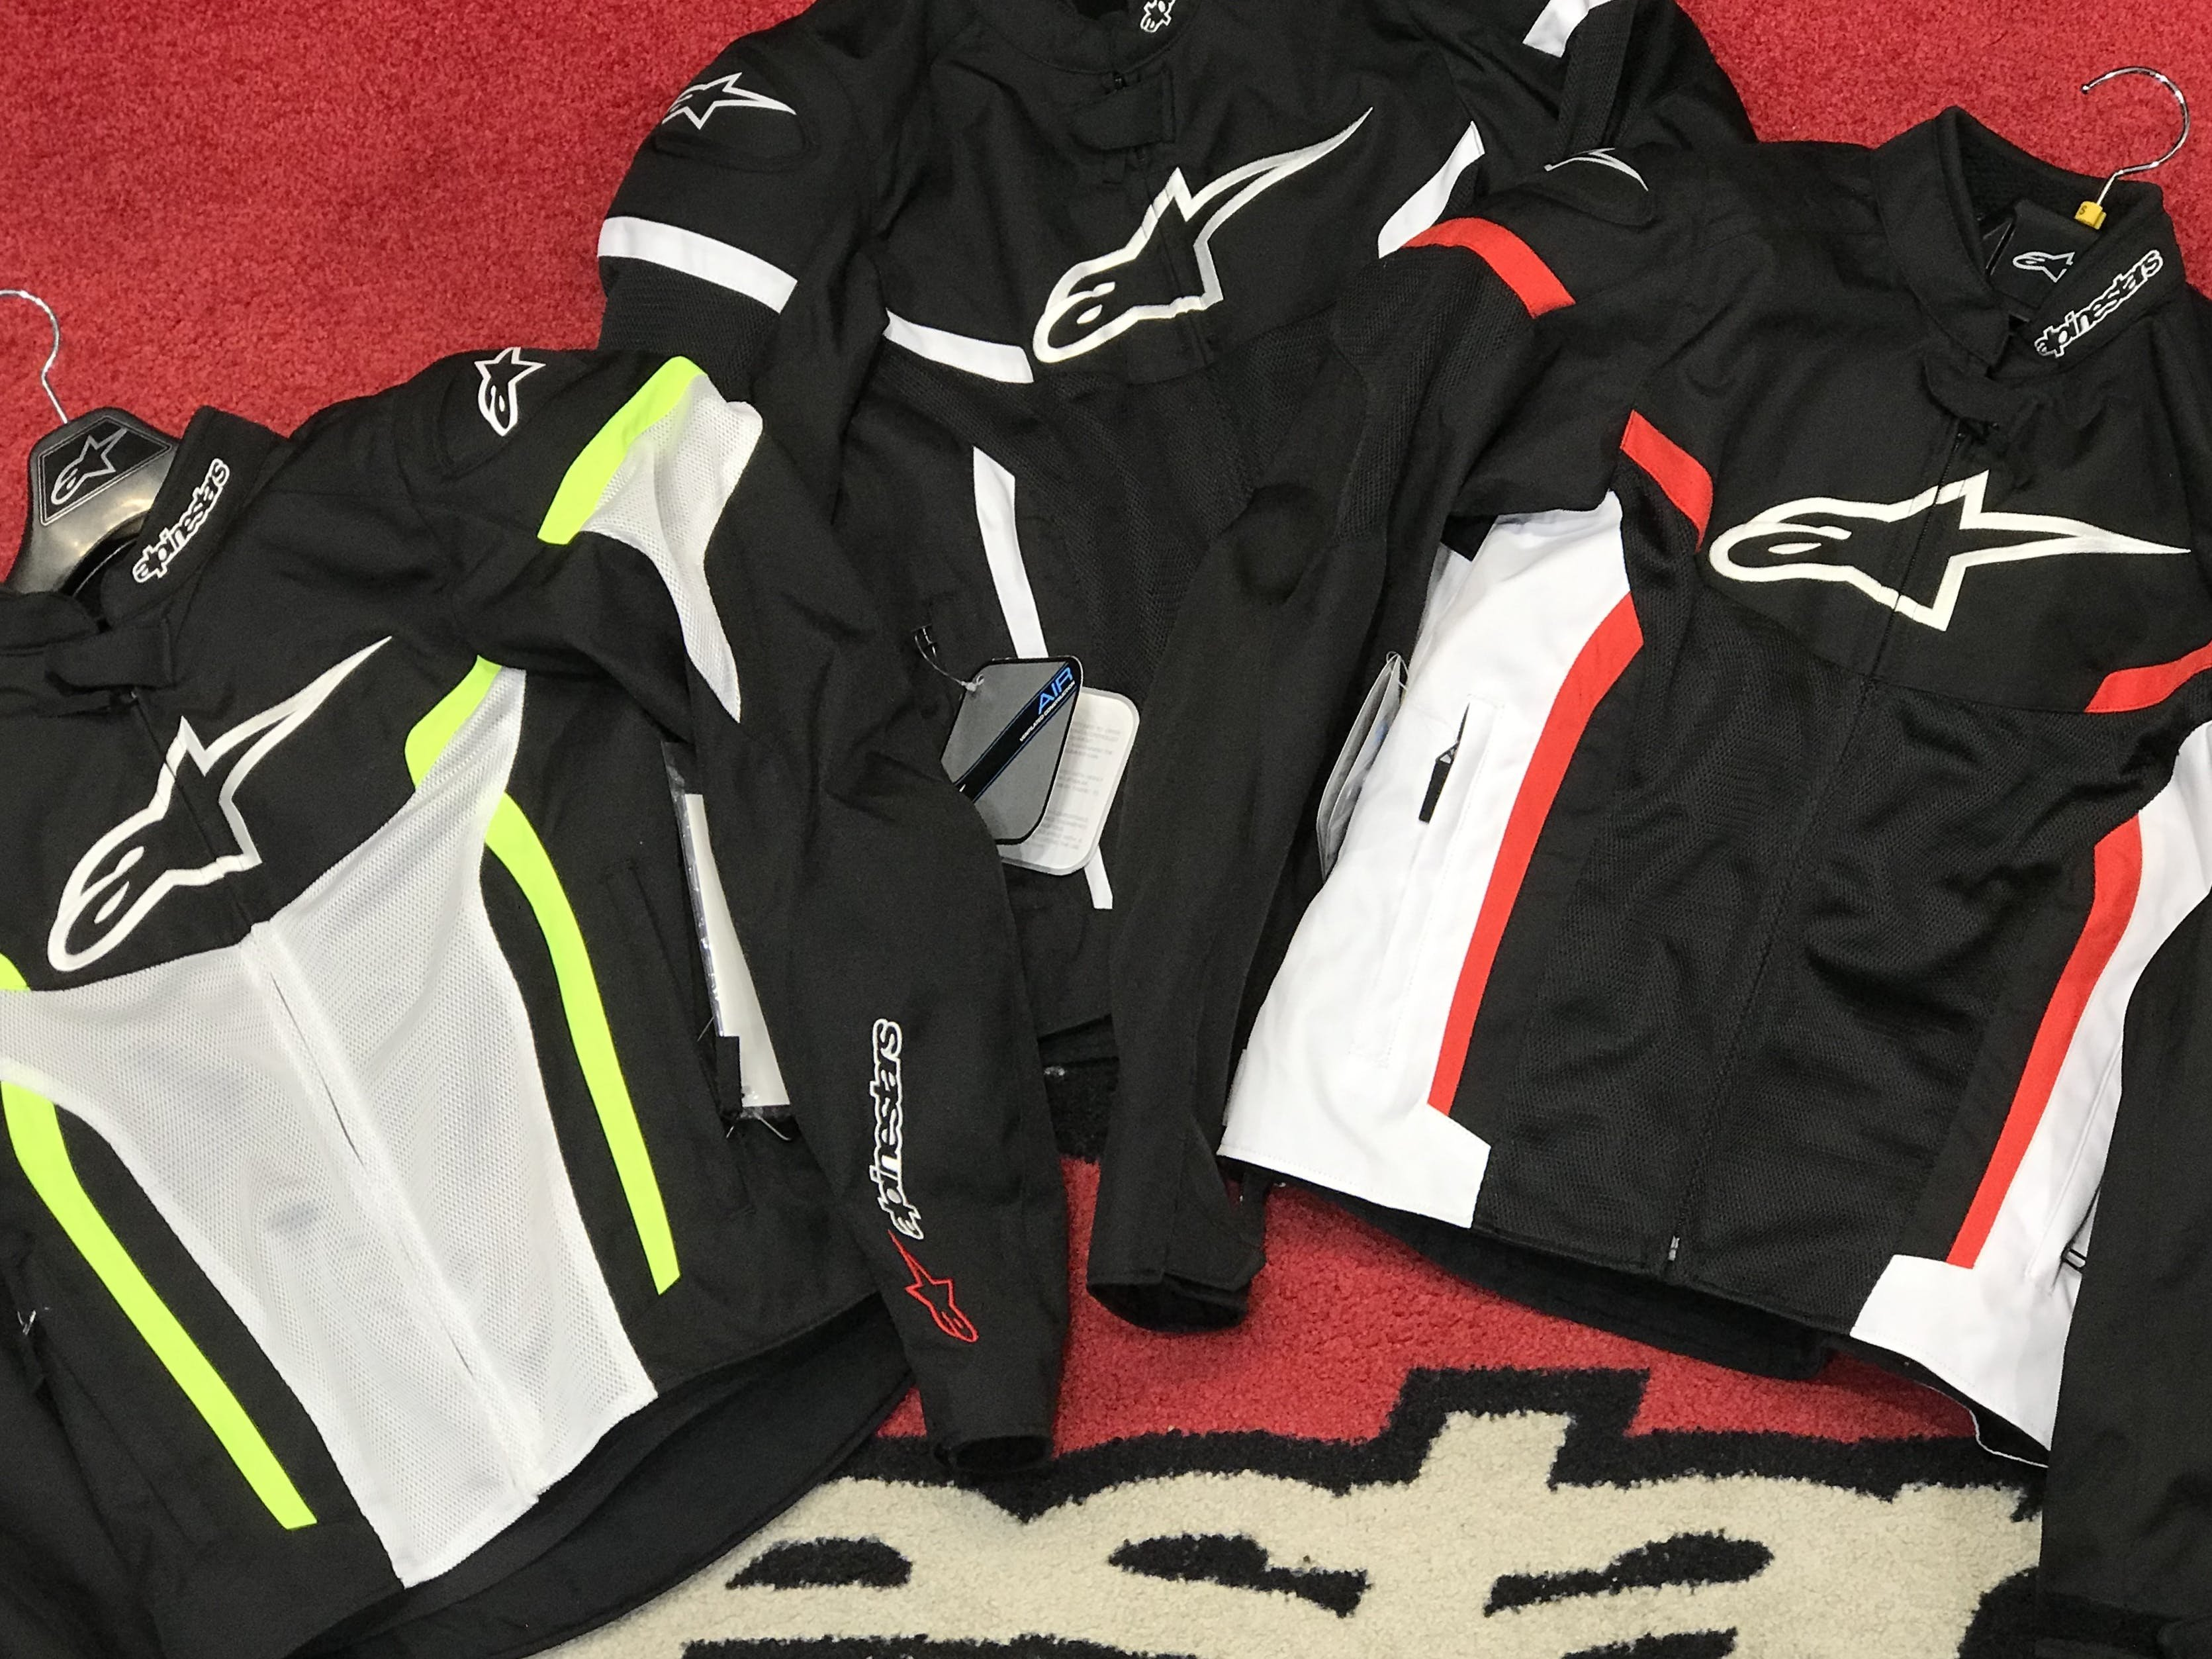 T-GP Air V2 Jackets in store at Bikebiz in 3 different colours